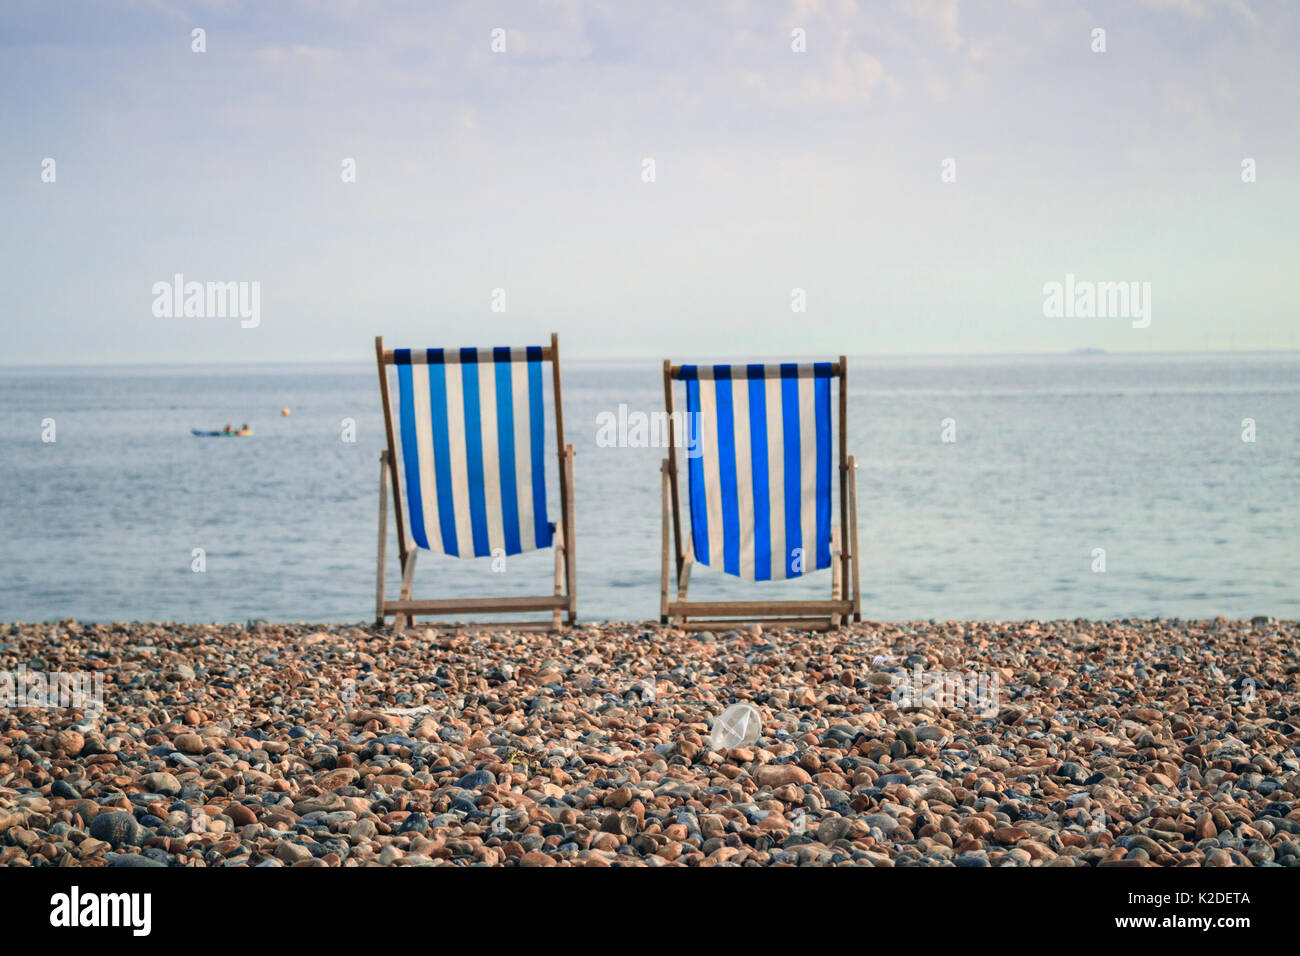 Deckchairs on Brighton Beach, Brighton, Sussex, UK, 2017 - Stock Image